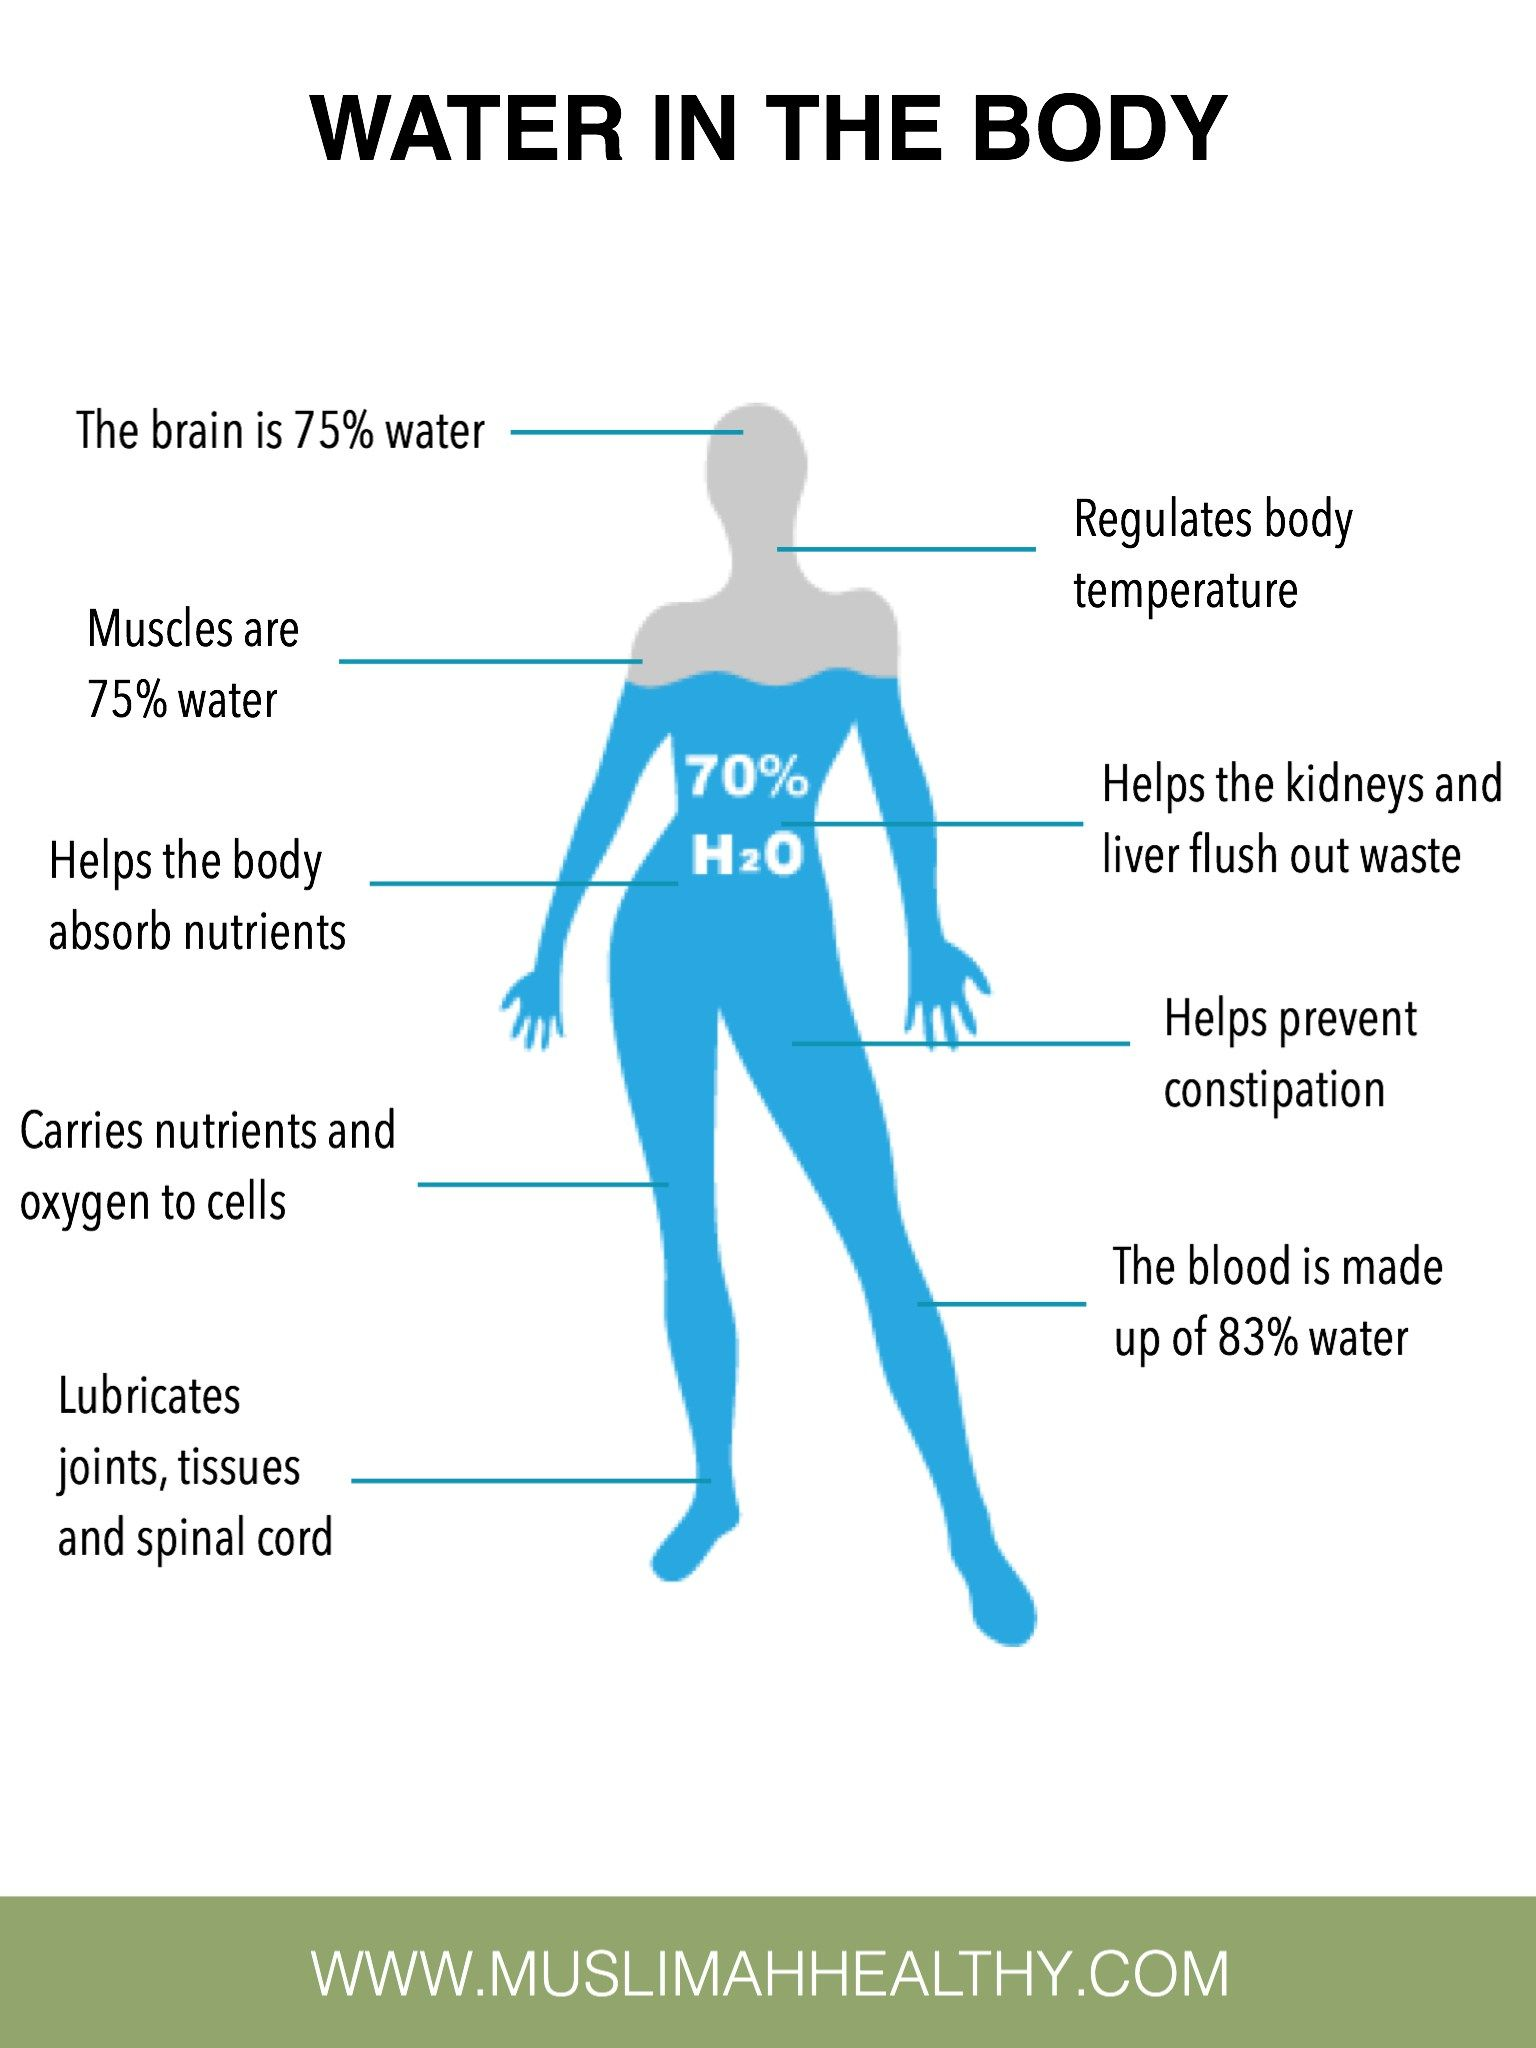 what part does water play in regulating your body temperature